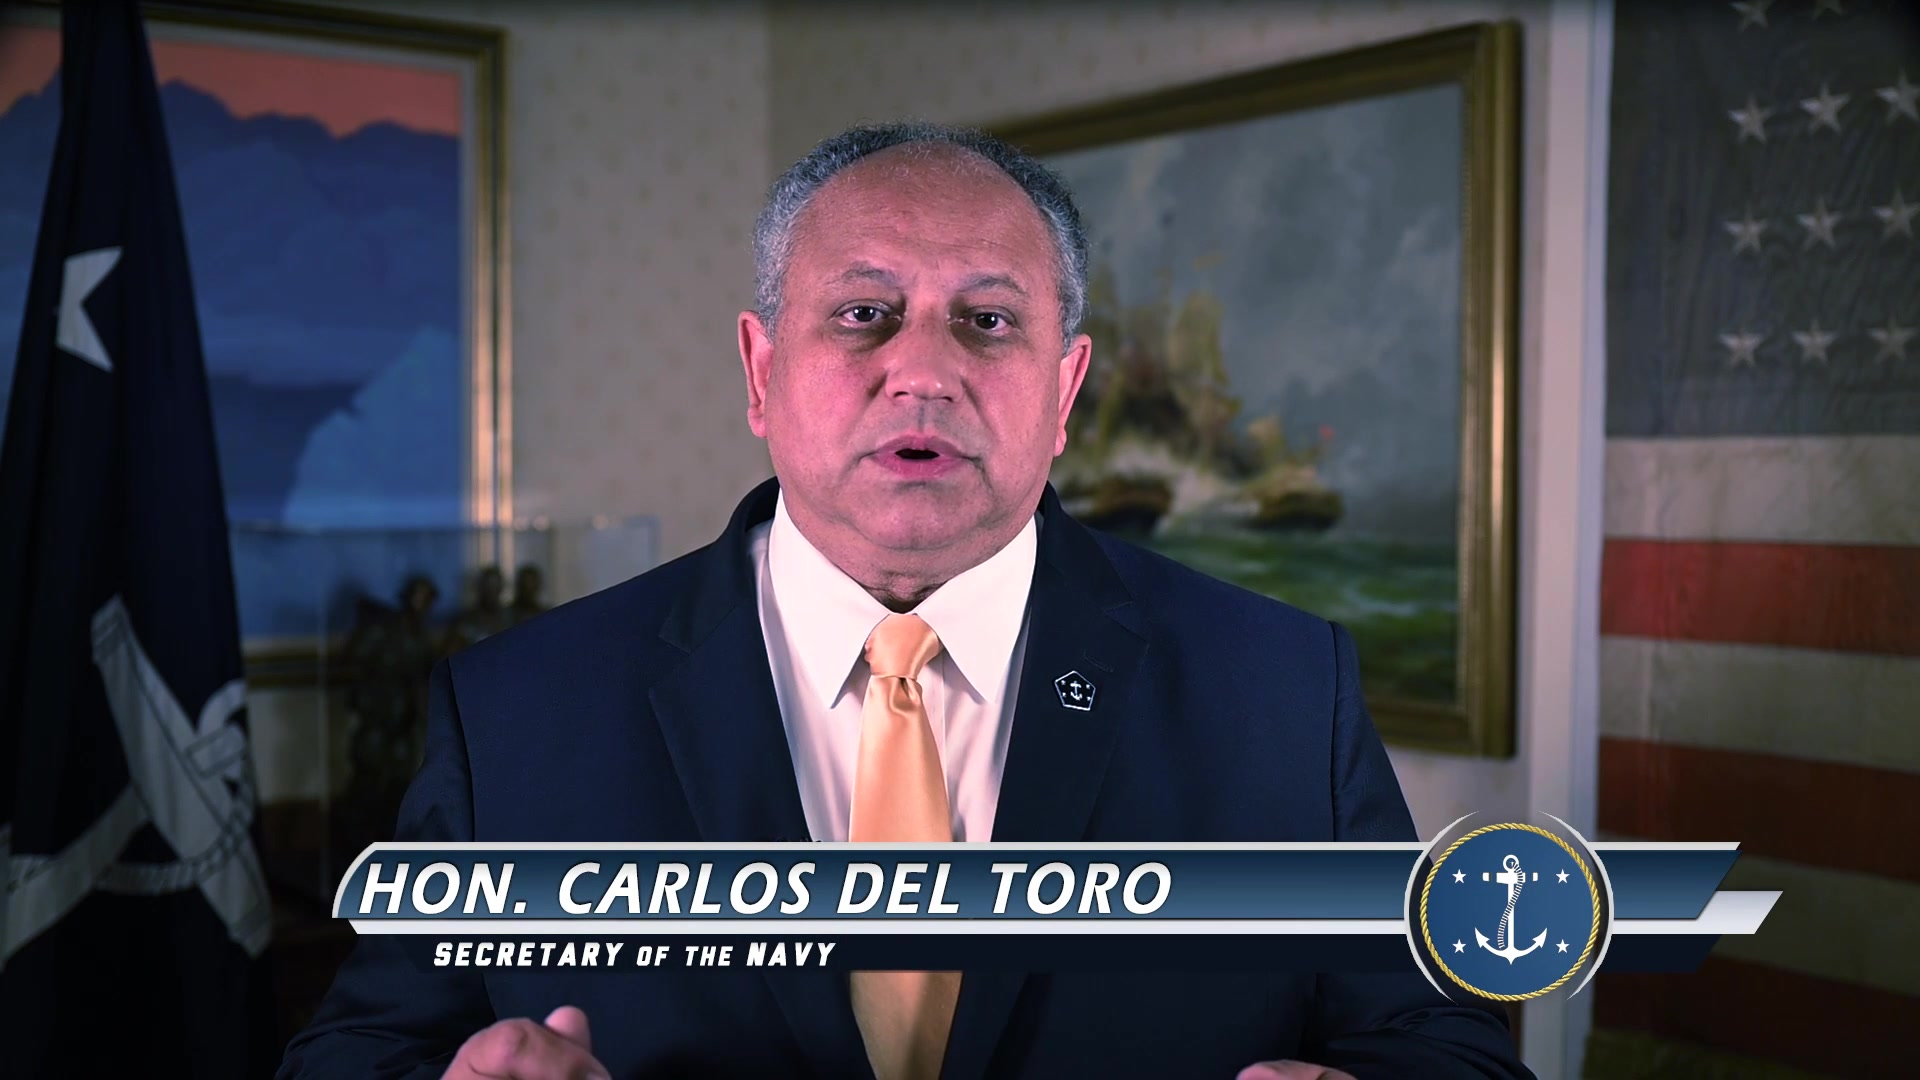 Secretary of the Navy Carlos Del Toro delivers remarks in commemoration of the 20th anniversary of the Sept. 11 attacks.